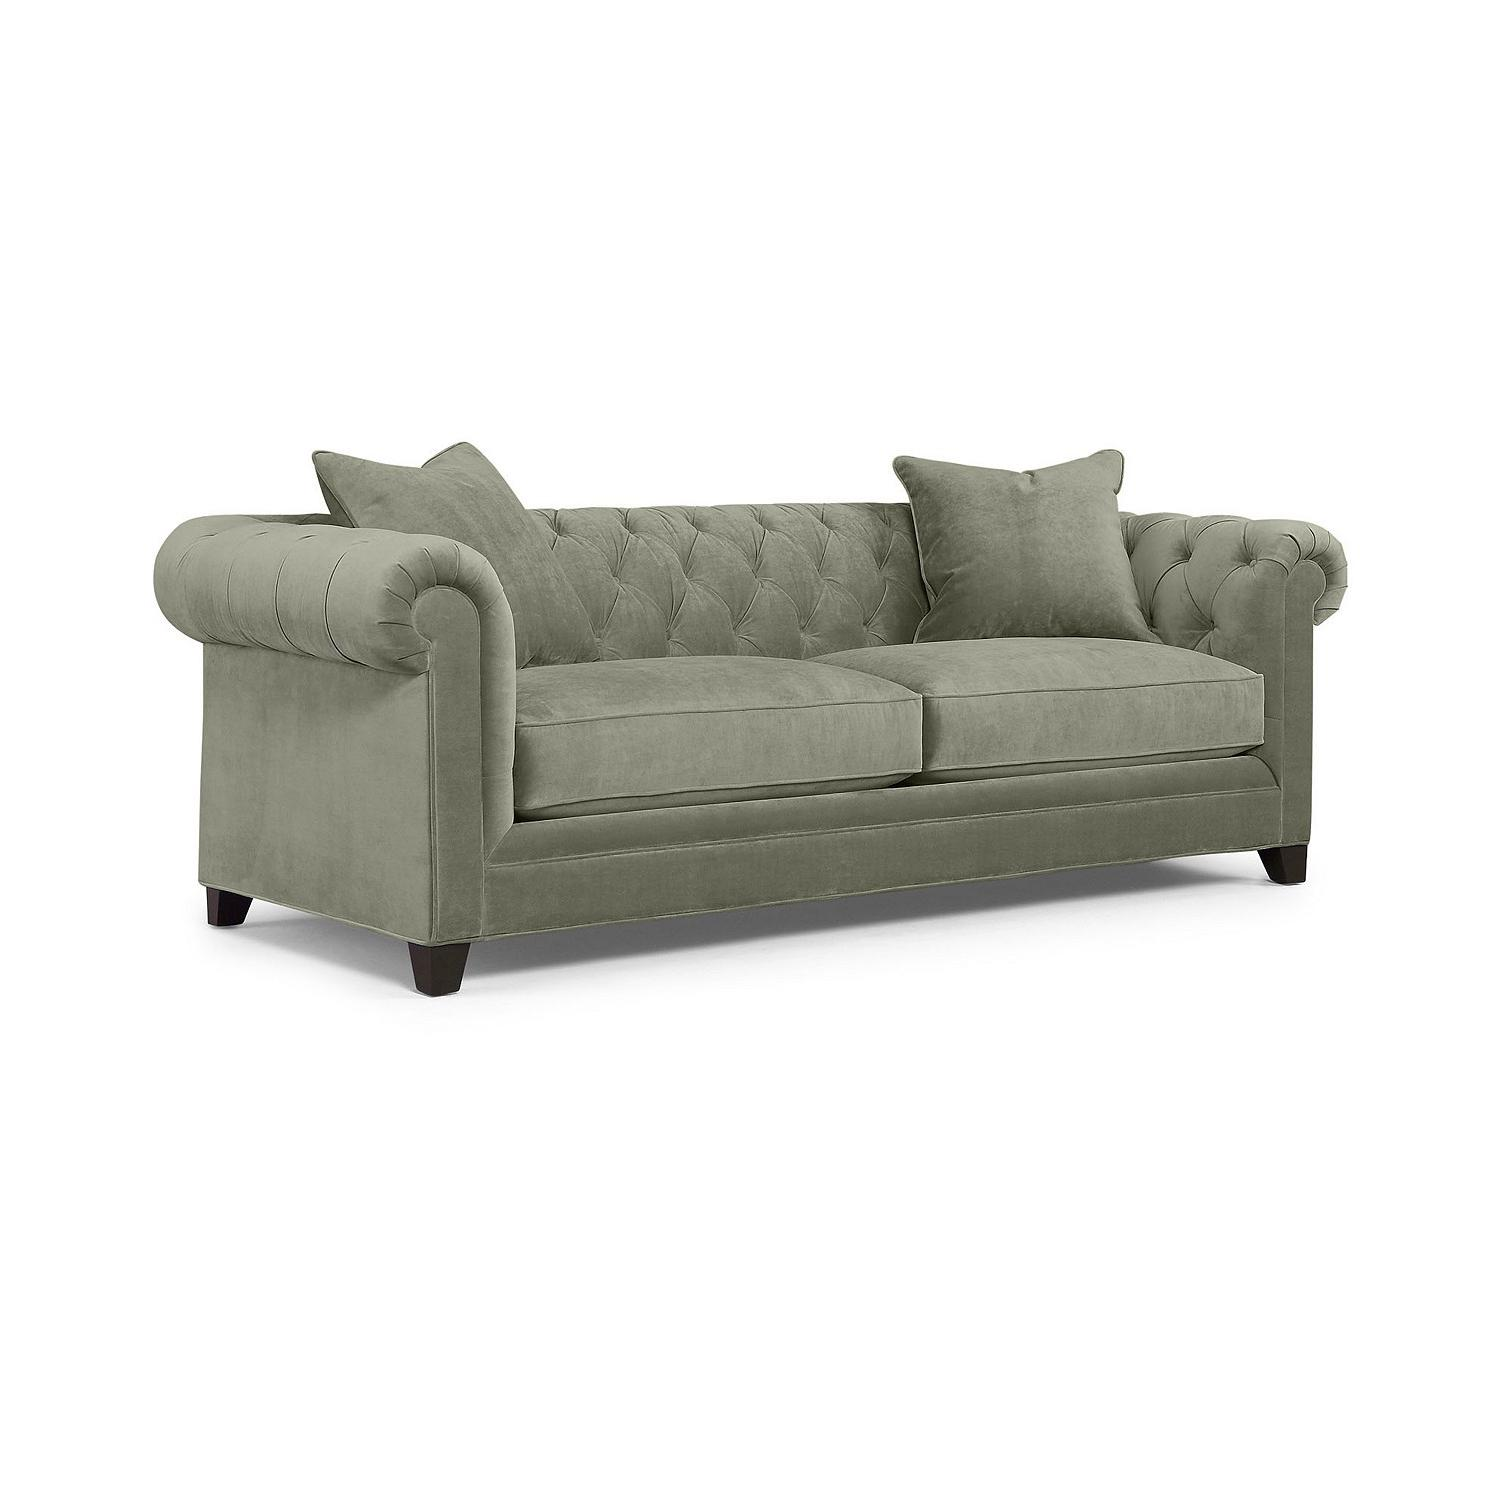 Macy's Martha Stewart Chesterfield Sofa in Blue - image-0